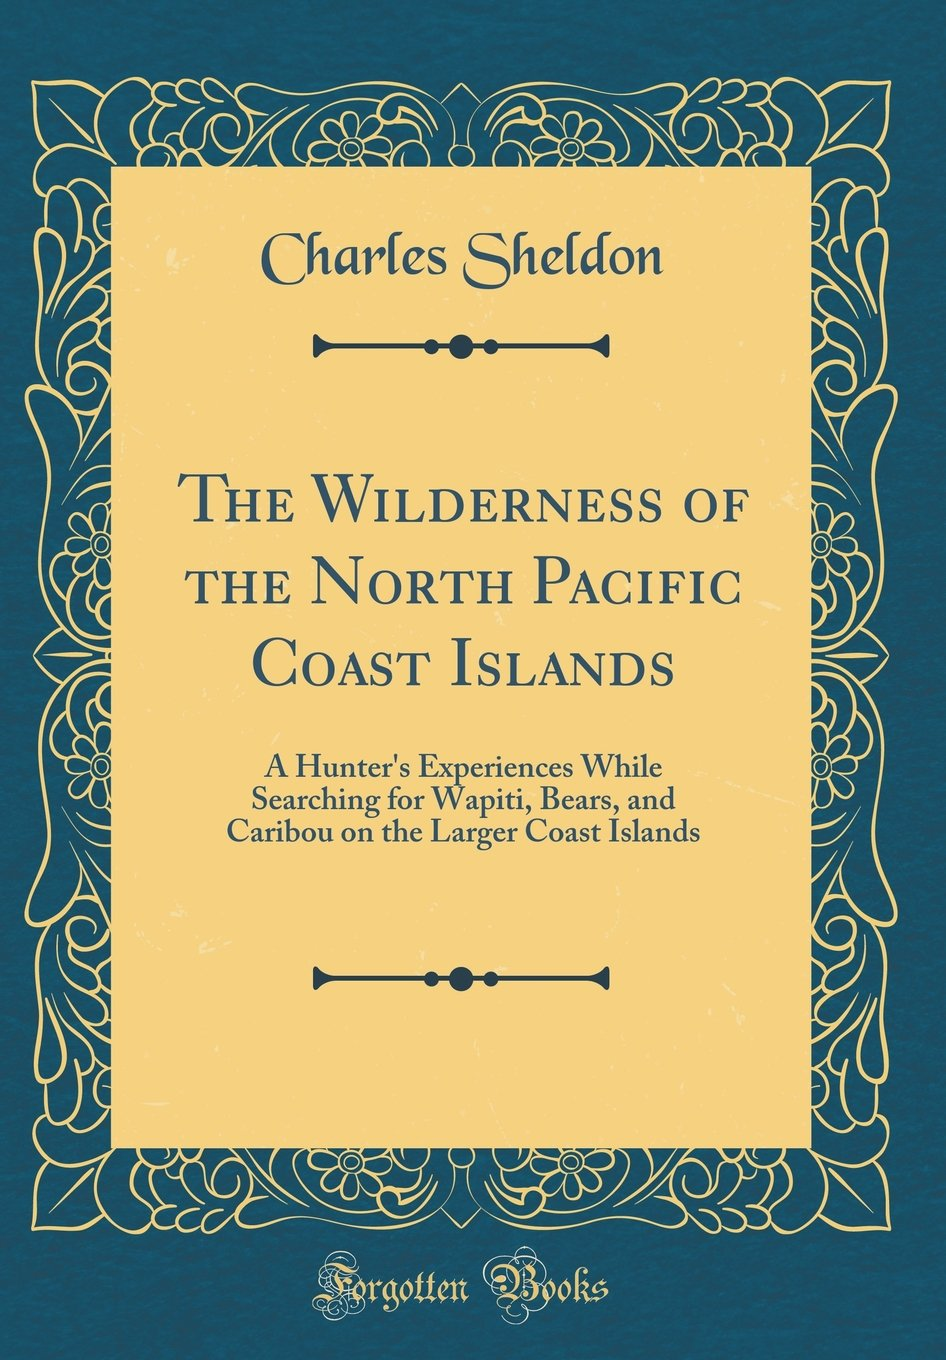 Read Online The Wilderness of the North Pacific Coast Islands: A Hunter's Experiences While Searching for Wapiti, Bears, and Caribou on the Larger Coast Islands (Classic Reprint) PDF